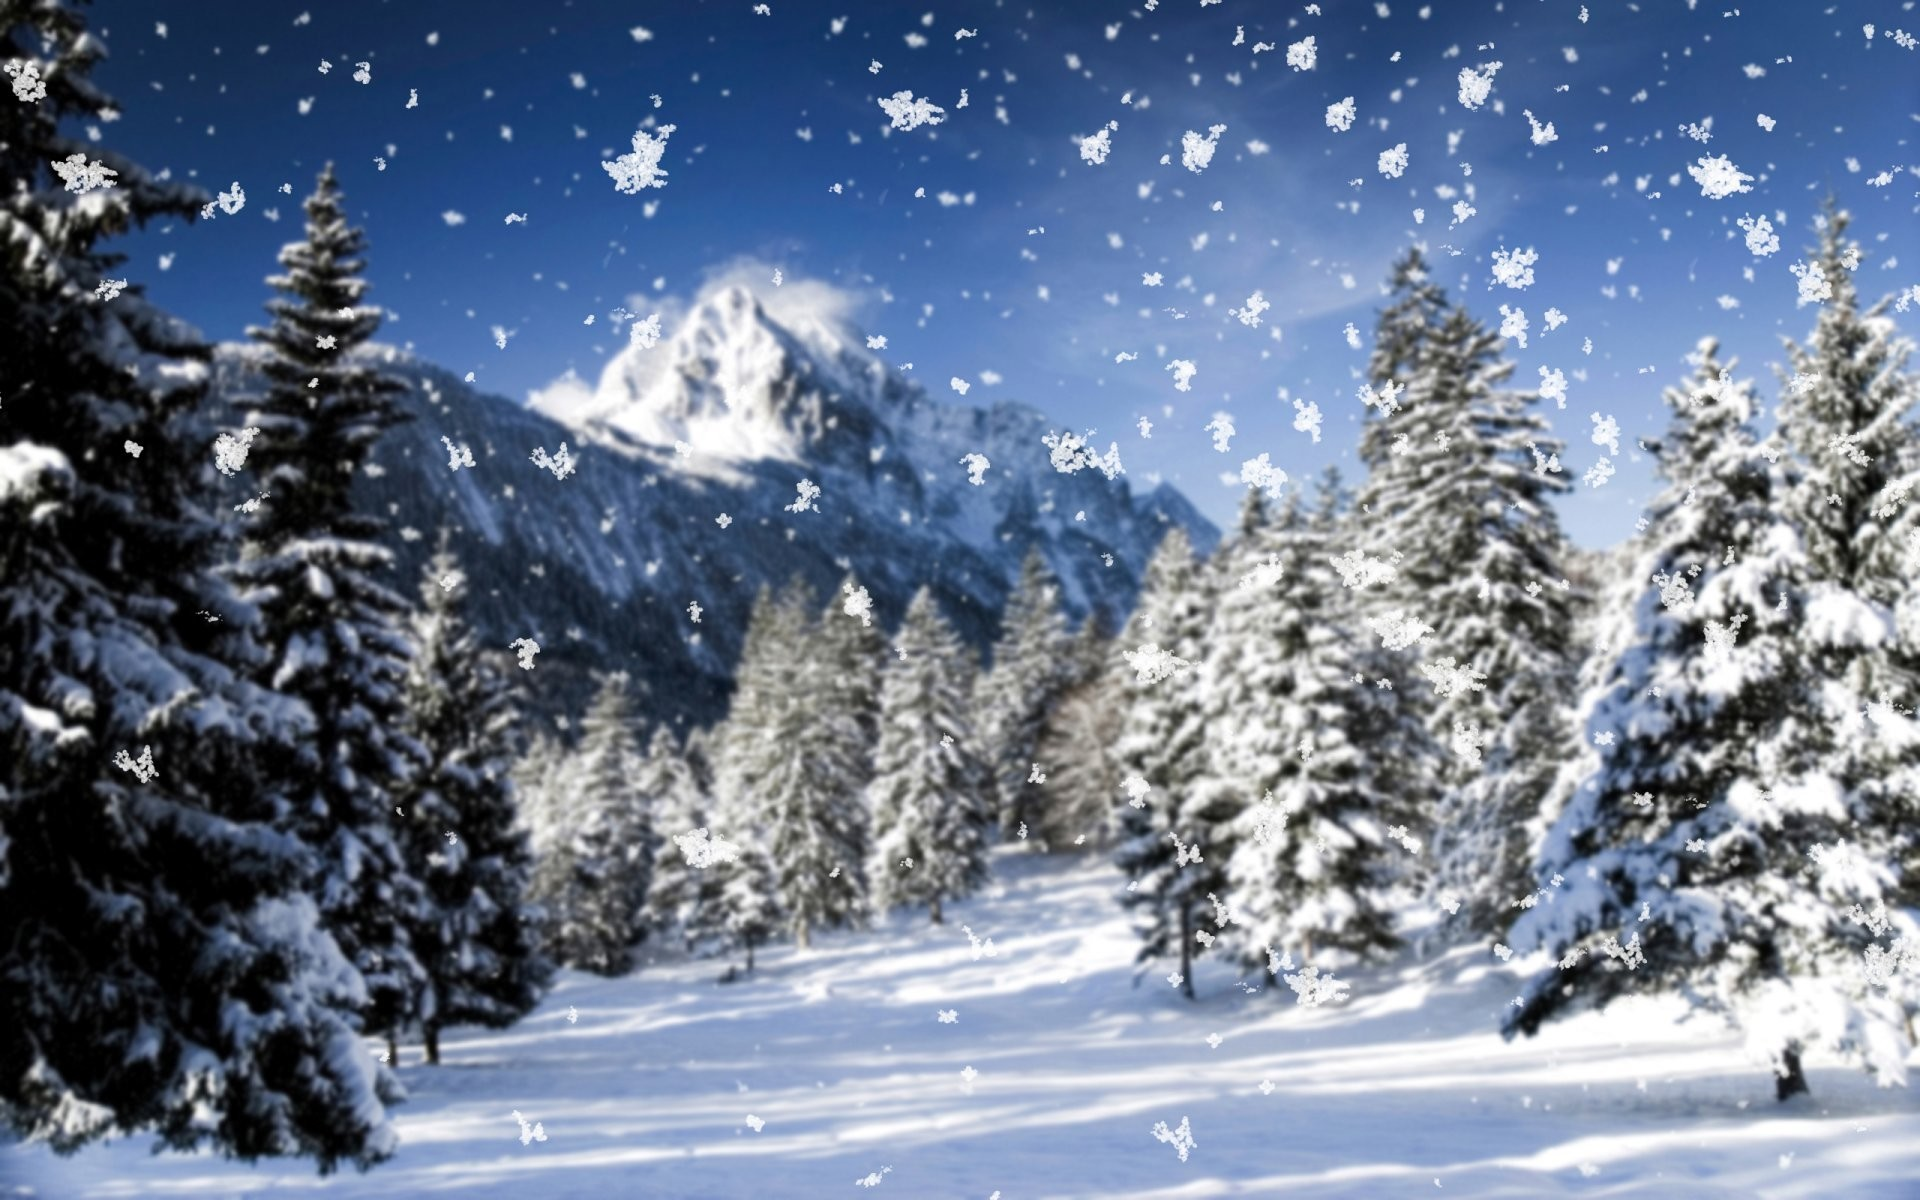 Res: 1920x1200, nature snowflakes close up snow blizzard winter winter wallpaper cool frost  tree mountain spruce christmas tree